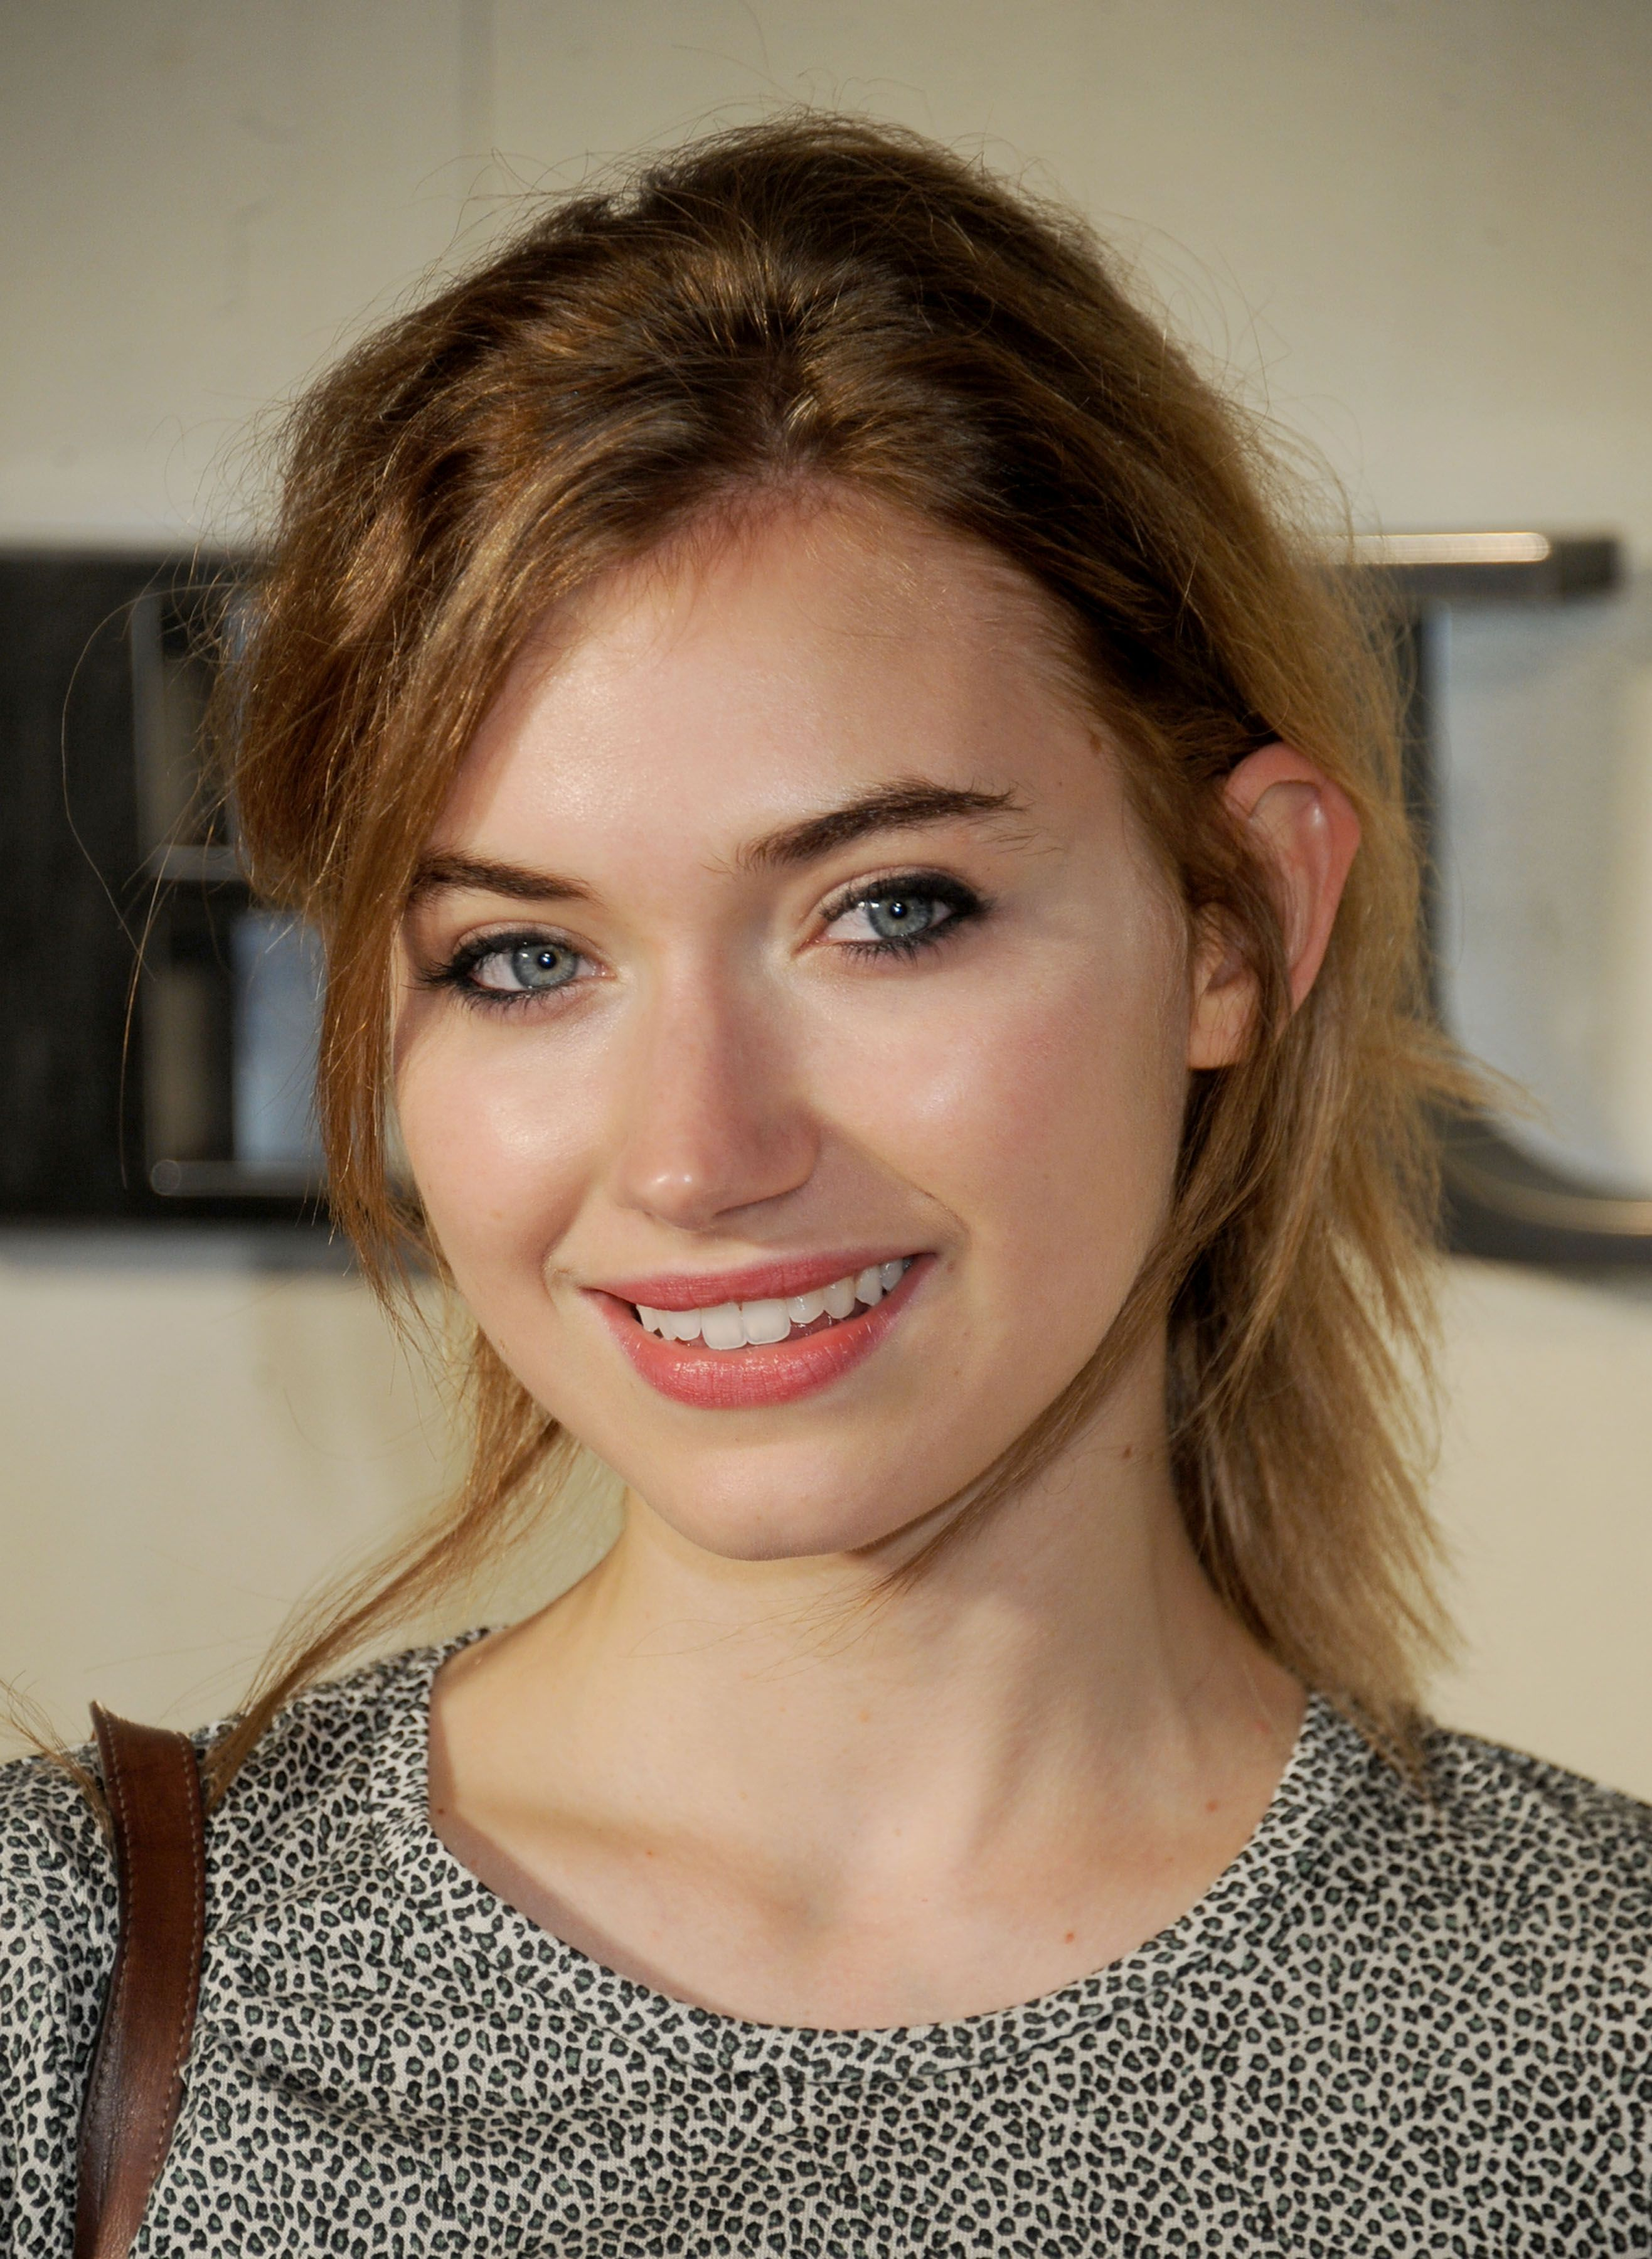 imogen poots listalimogen poots instagram, imogen poots gif, imogen poots gif hunt, imogen poots photoshoot, imogen poots vk, imogen poots green room, imogen poots site, imogen poots png, imogen poots listal, imogen poots screencaps, imogen poots фильмография, imogen poots 2017, imogen poots wiki, imogen poots christian bale, imogen poots вк, imogen poots gallery, imogen poots фото, imogen poots interview, imogen poots and zac efron, imogen poots photo gallery